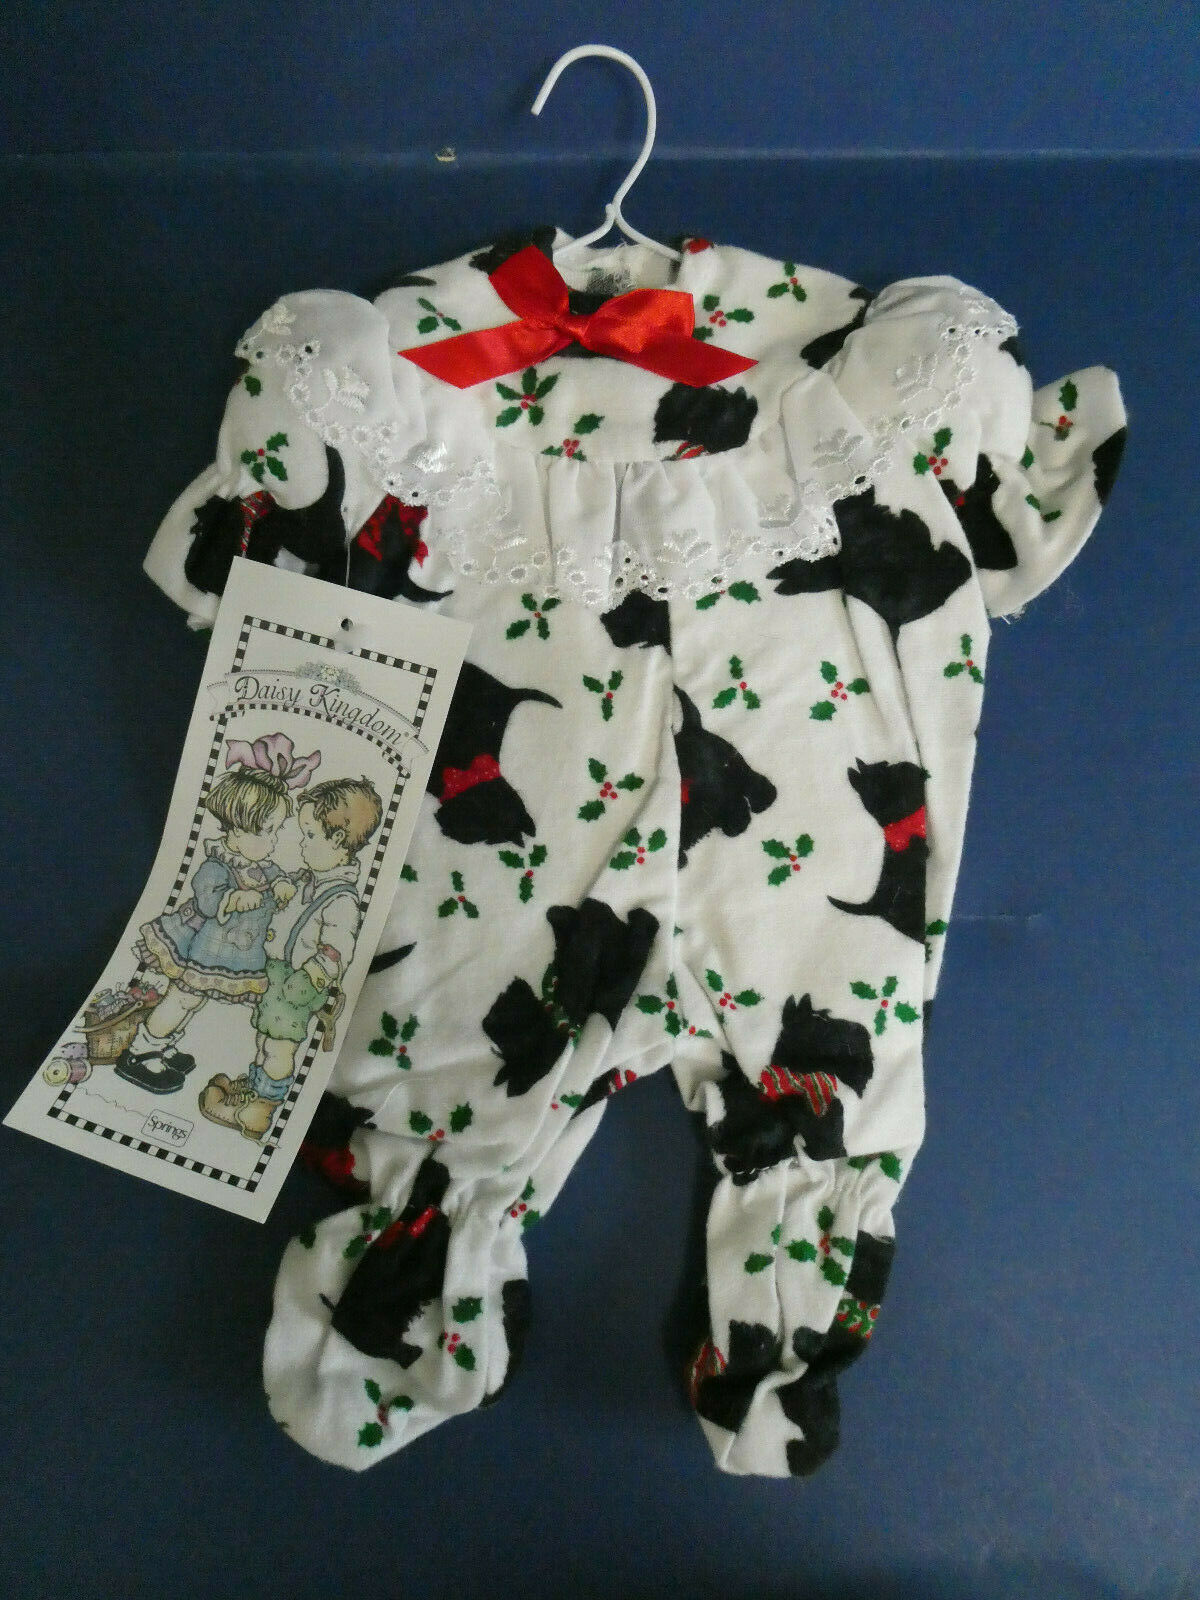 BRAND NEW DAISY KINGDOM FLANNEL FOOTED SCOTTY PJ S 5052-01260-FITS 12 DOLL 2 - $17.99